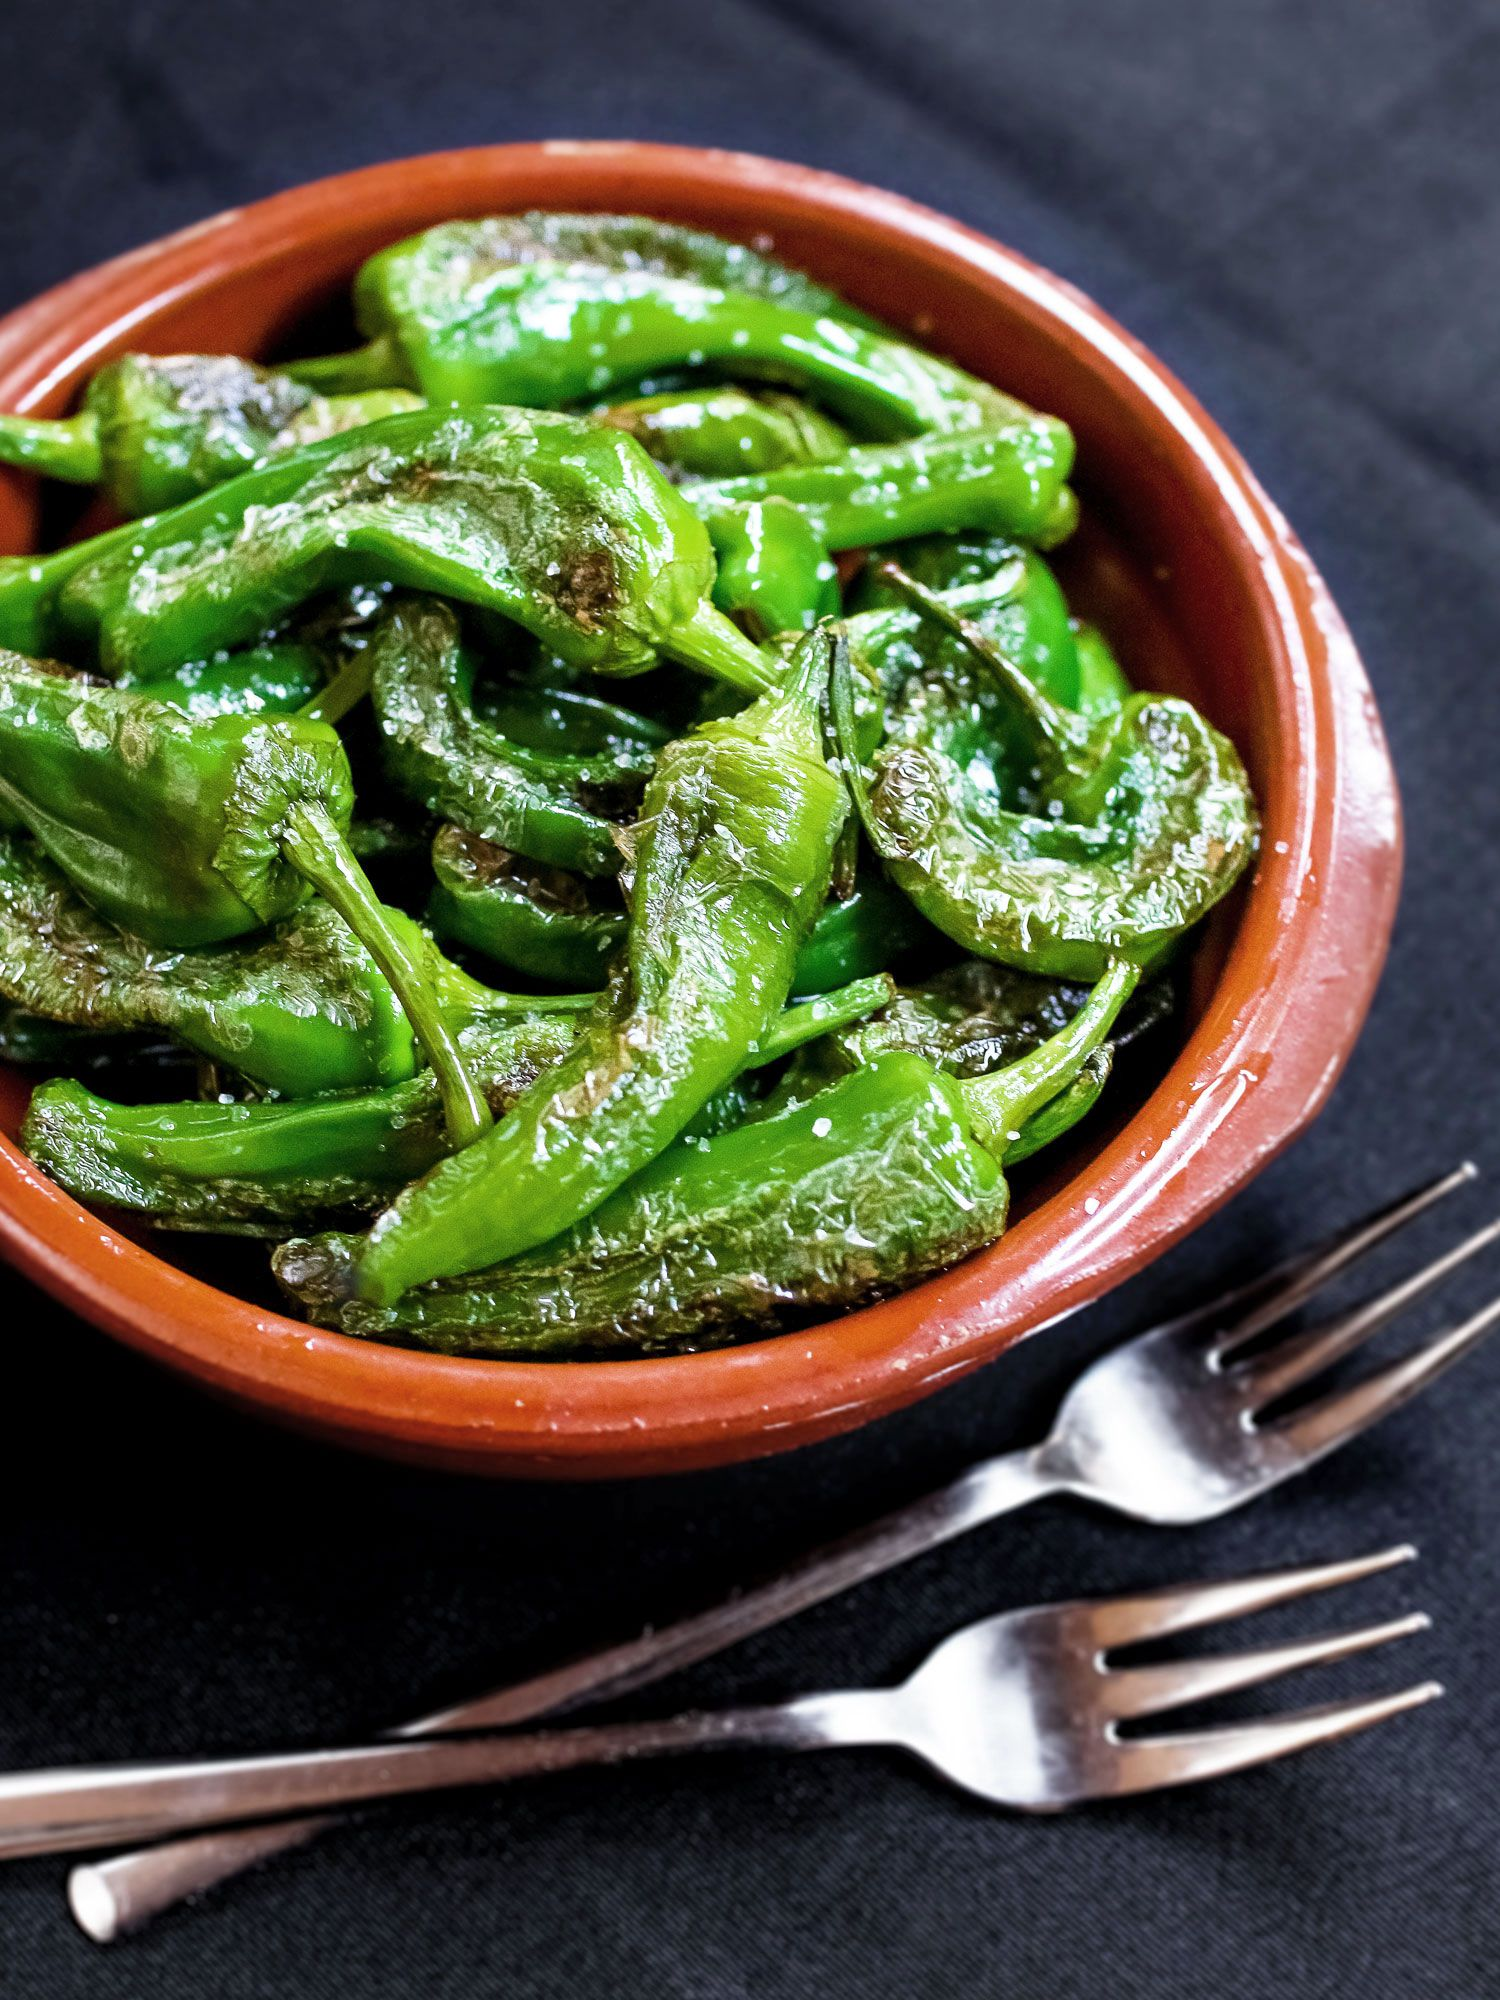 Spanish tapas-style green pepper | K33 Kitchen – Plant-based and vegan recipes